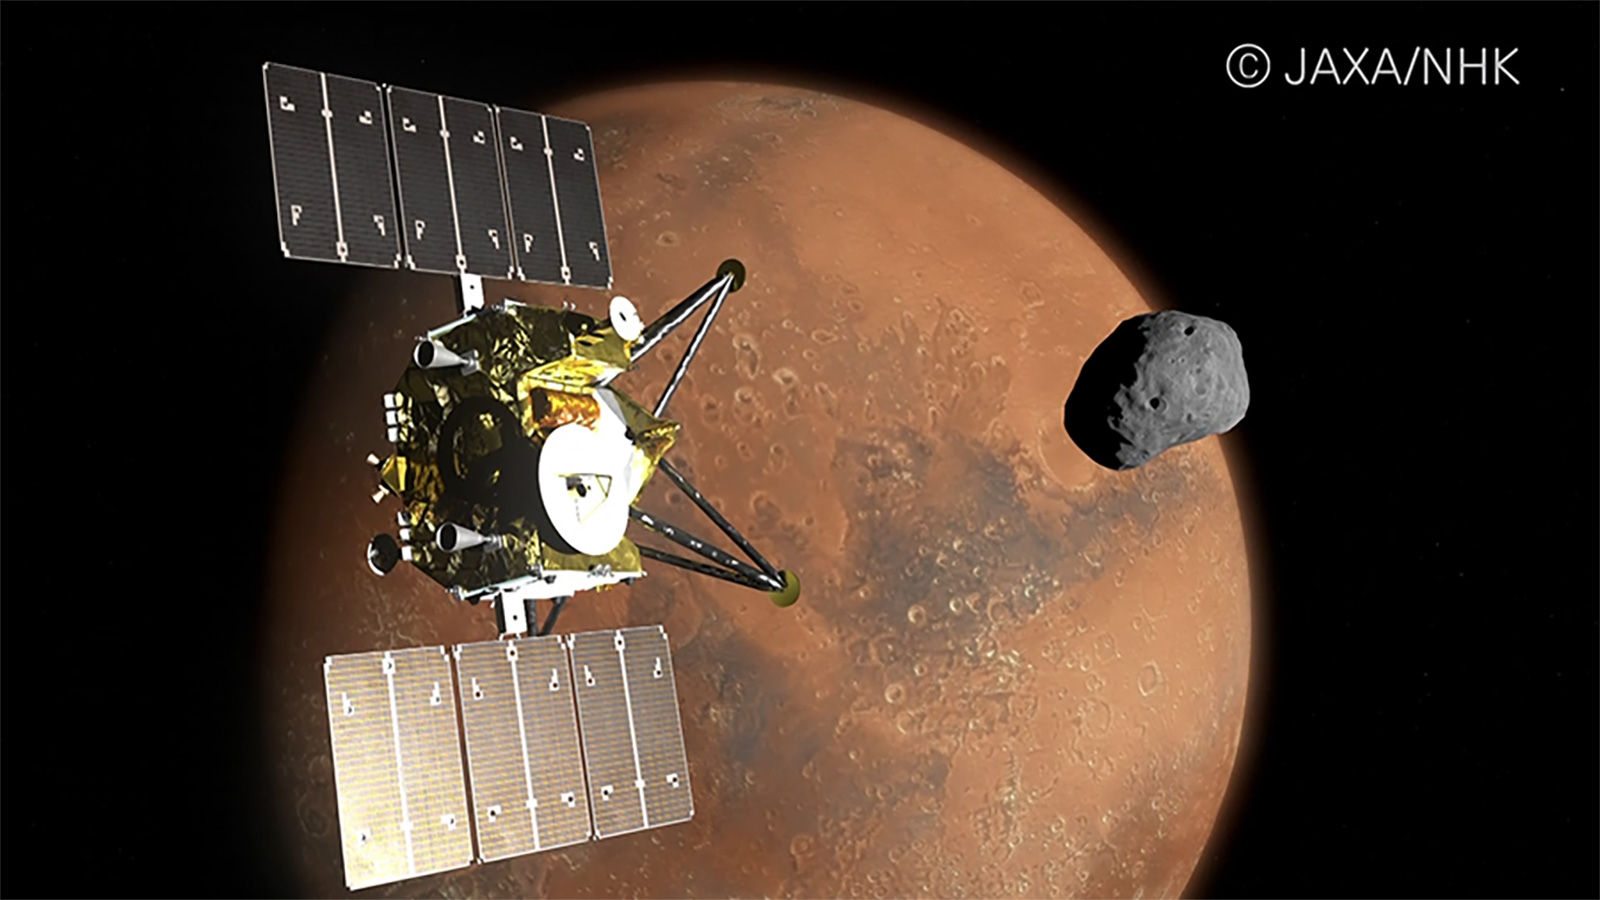 Japan will send an 8K camera to Mars and its moons | DeviceDaily.com